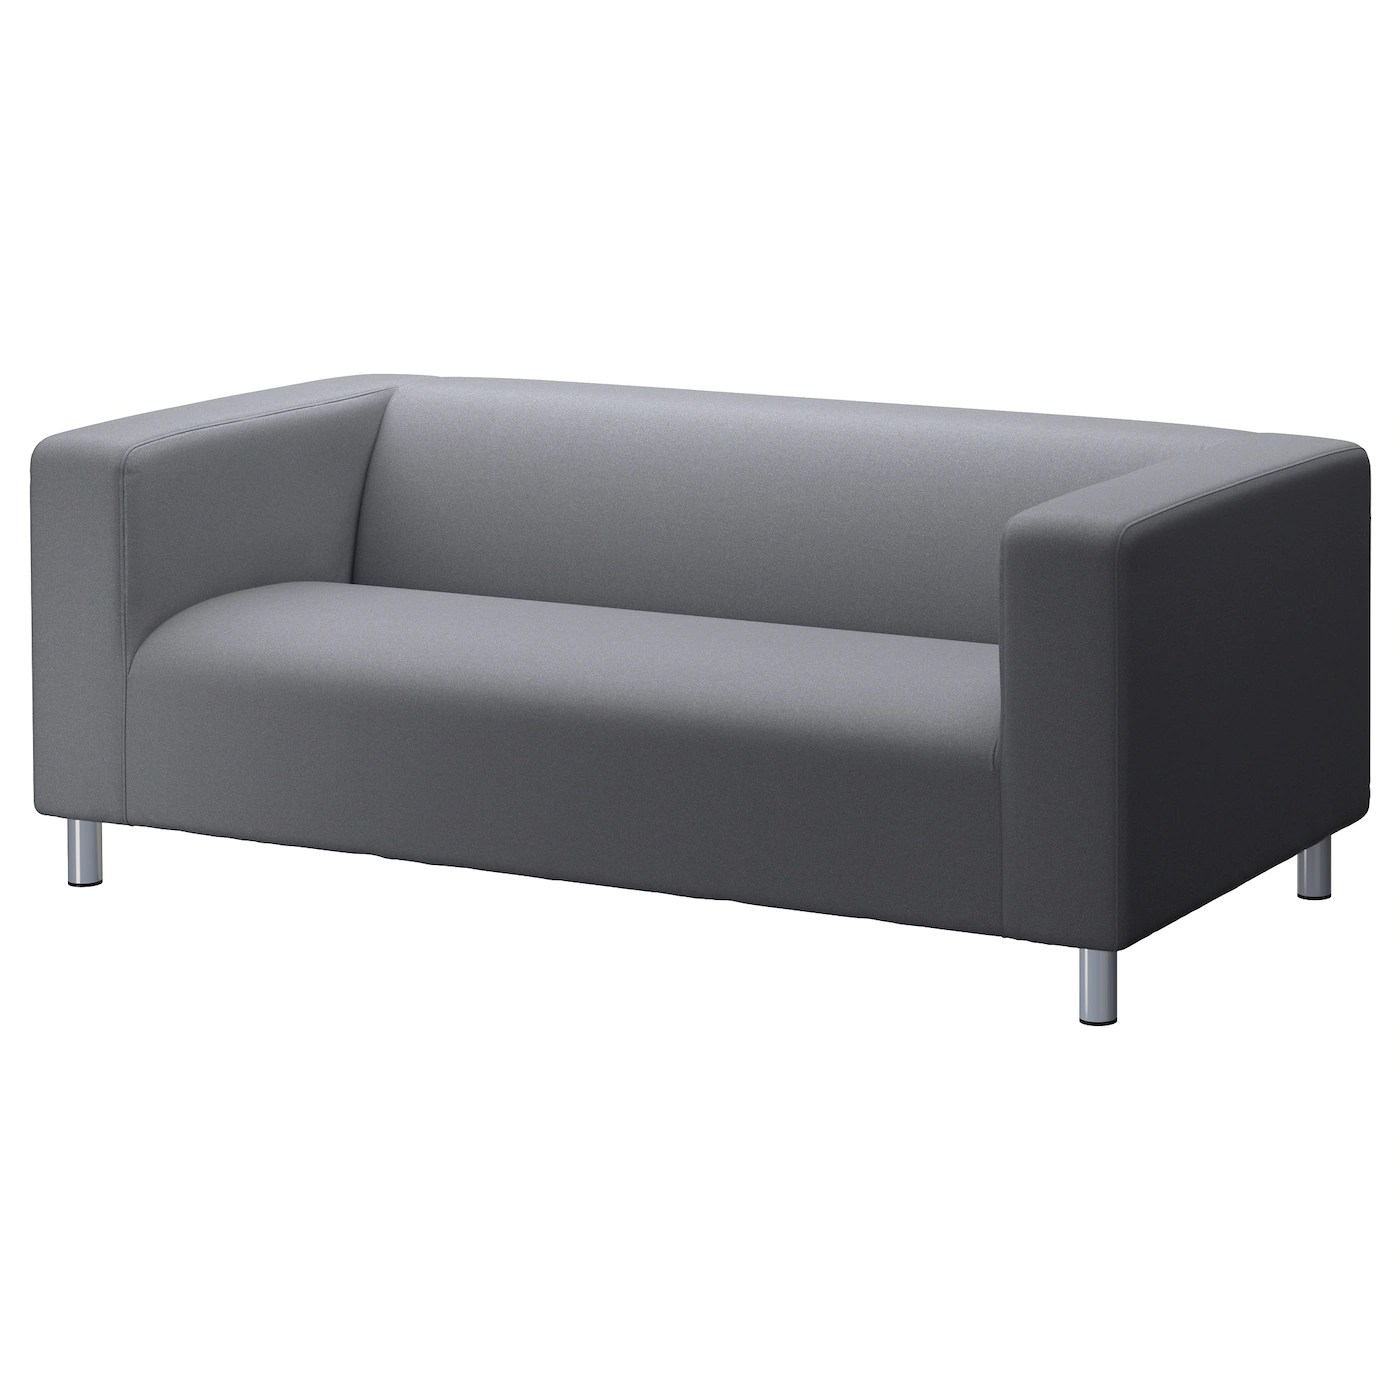 Can Ikea Sofa Covers Be Washed